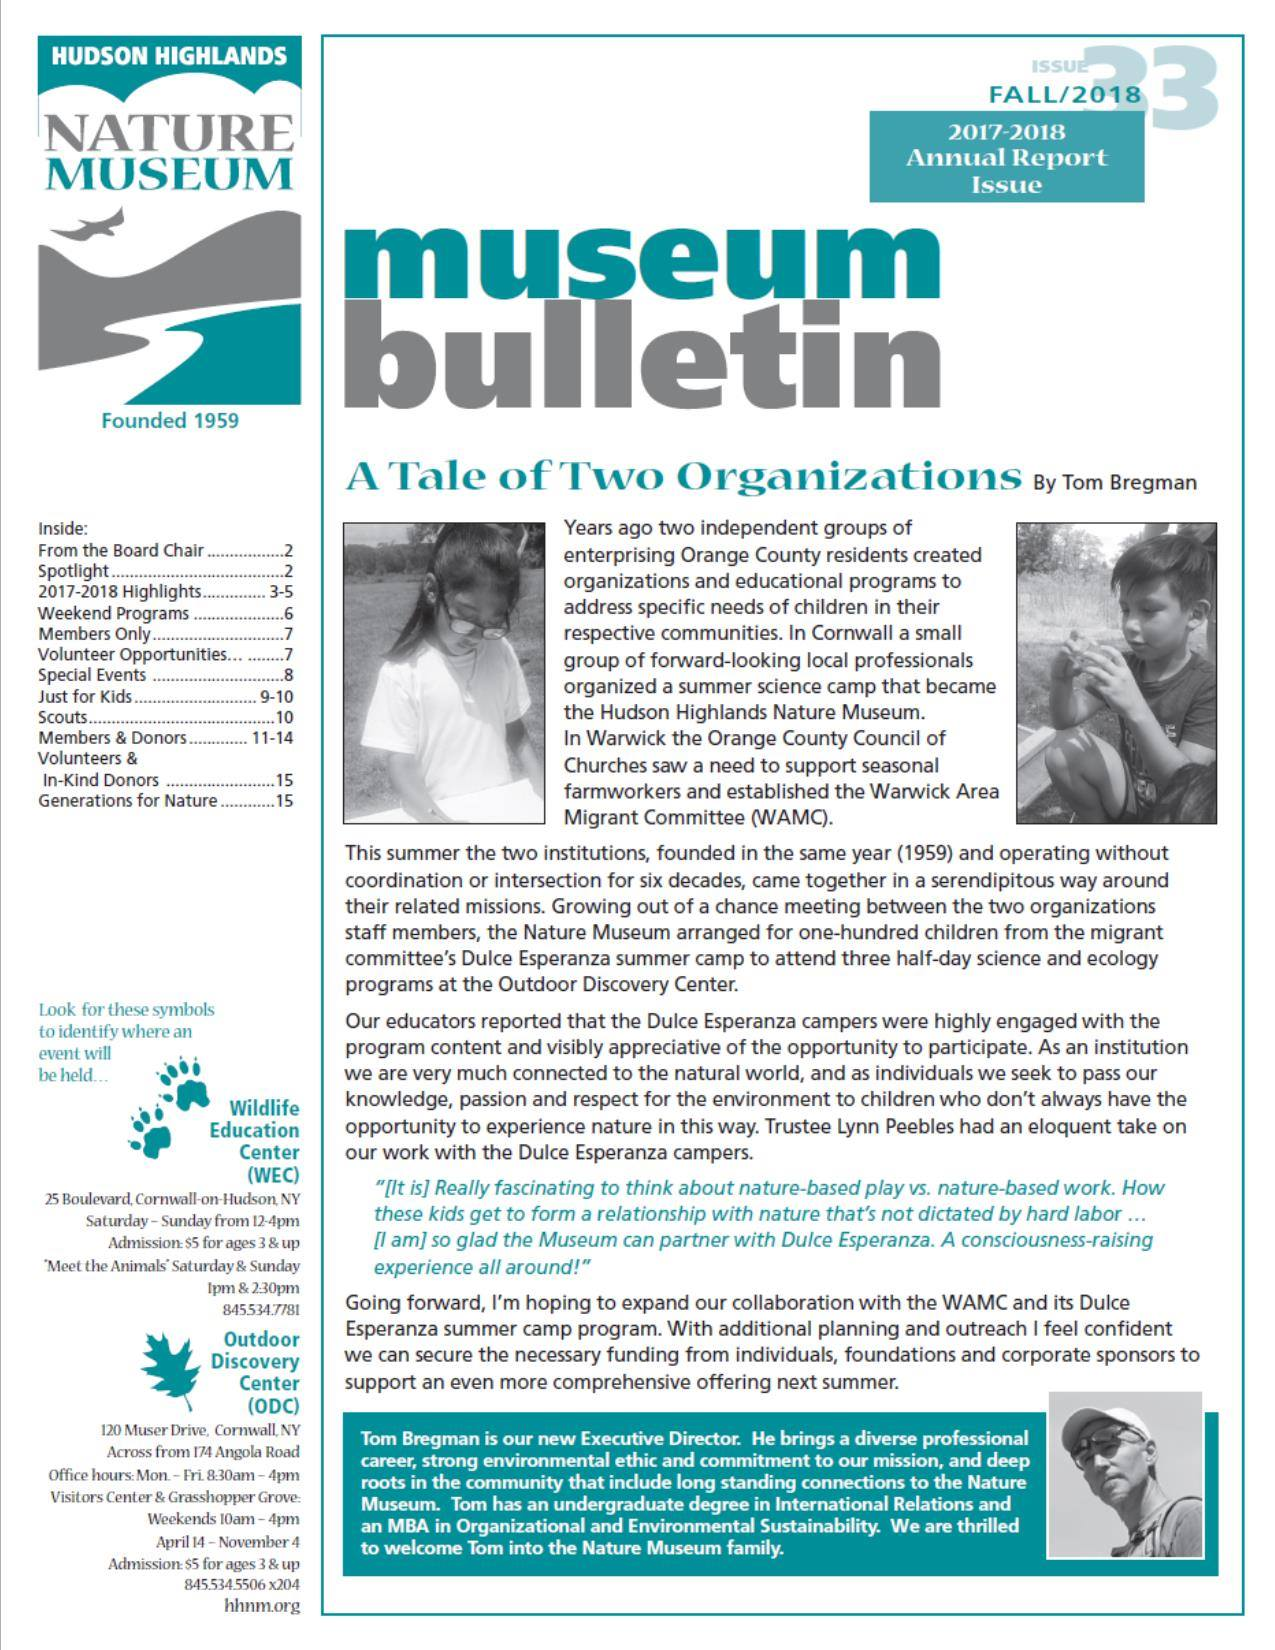 WAMC Summer Enrichment Program Featured in Hudson Highlands Nature Museum Annual Report.